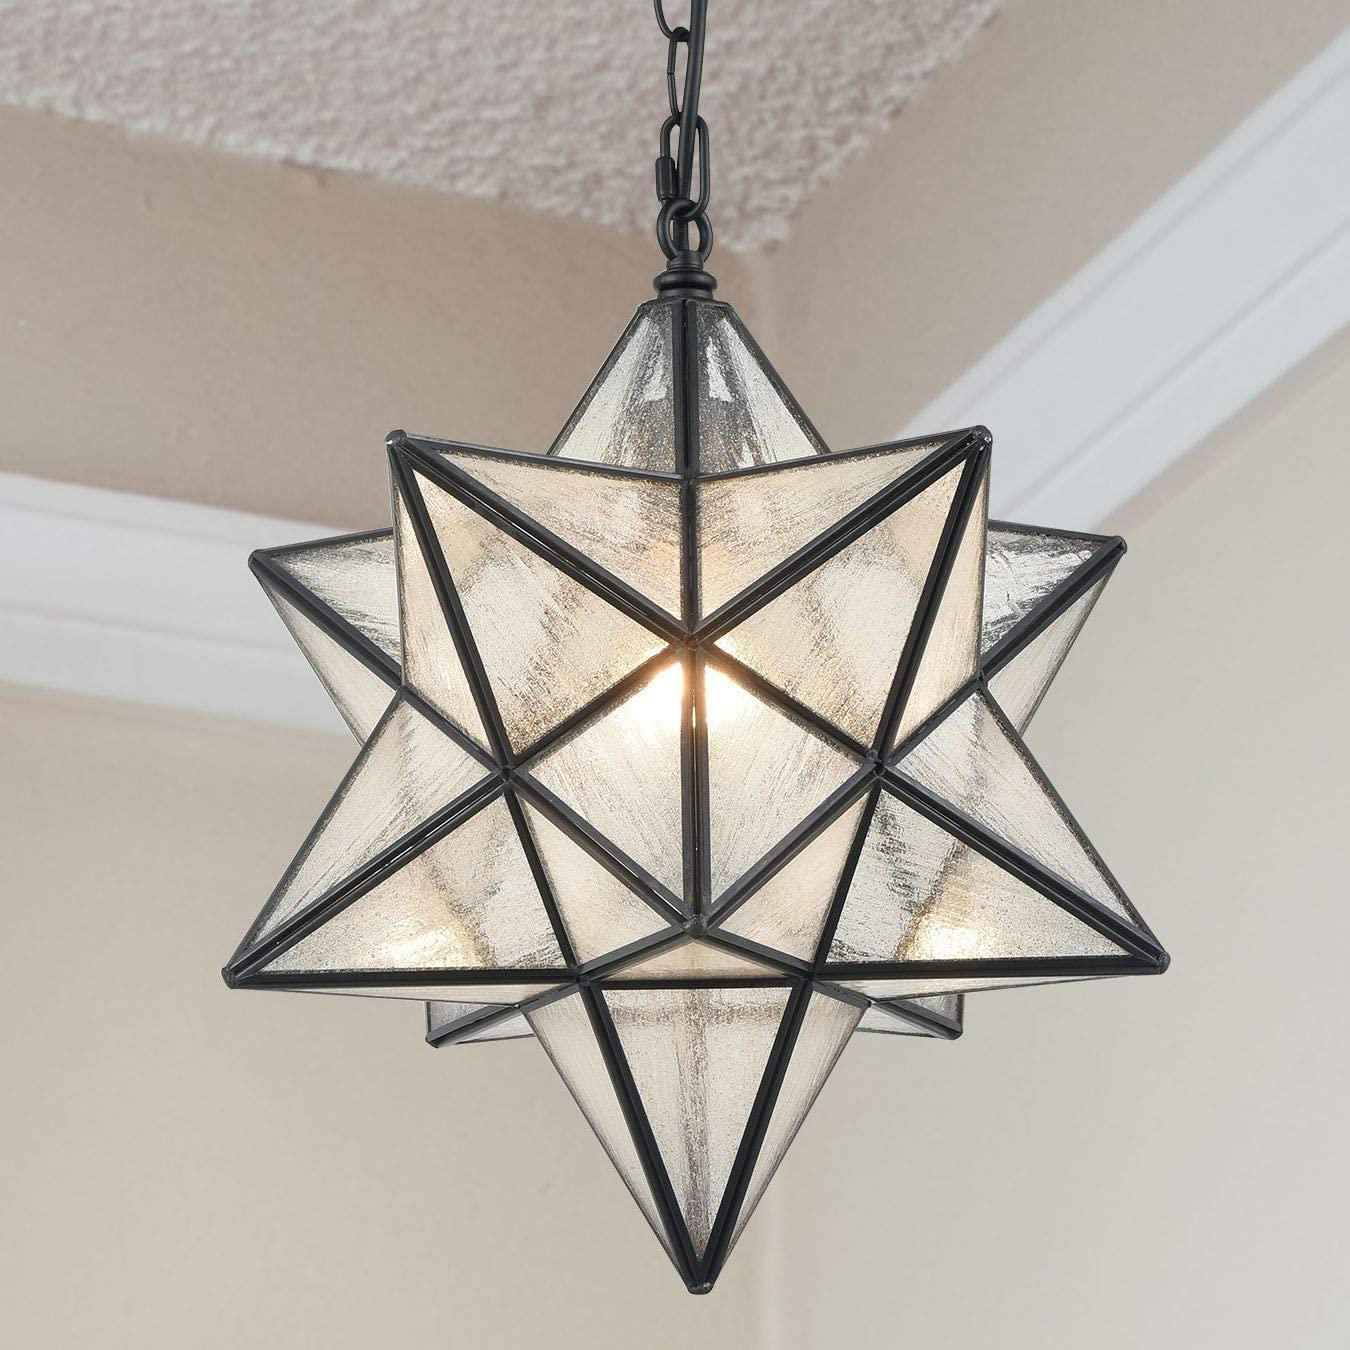 Modern Moravian Star Pendant Light Seeded Large Glass Star Lights with Chain, 16